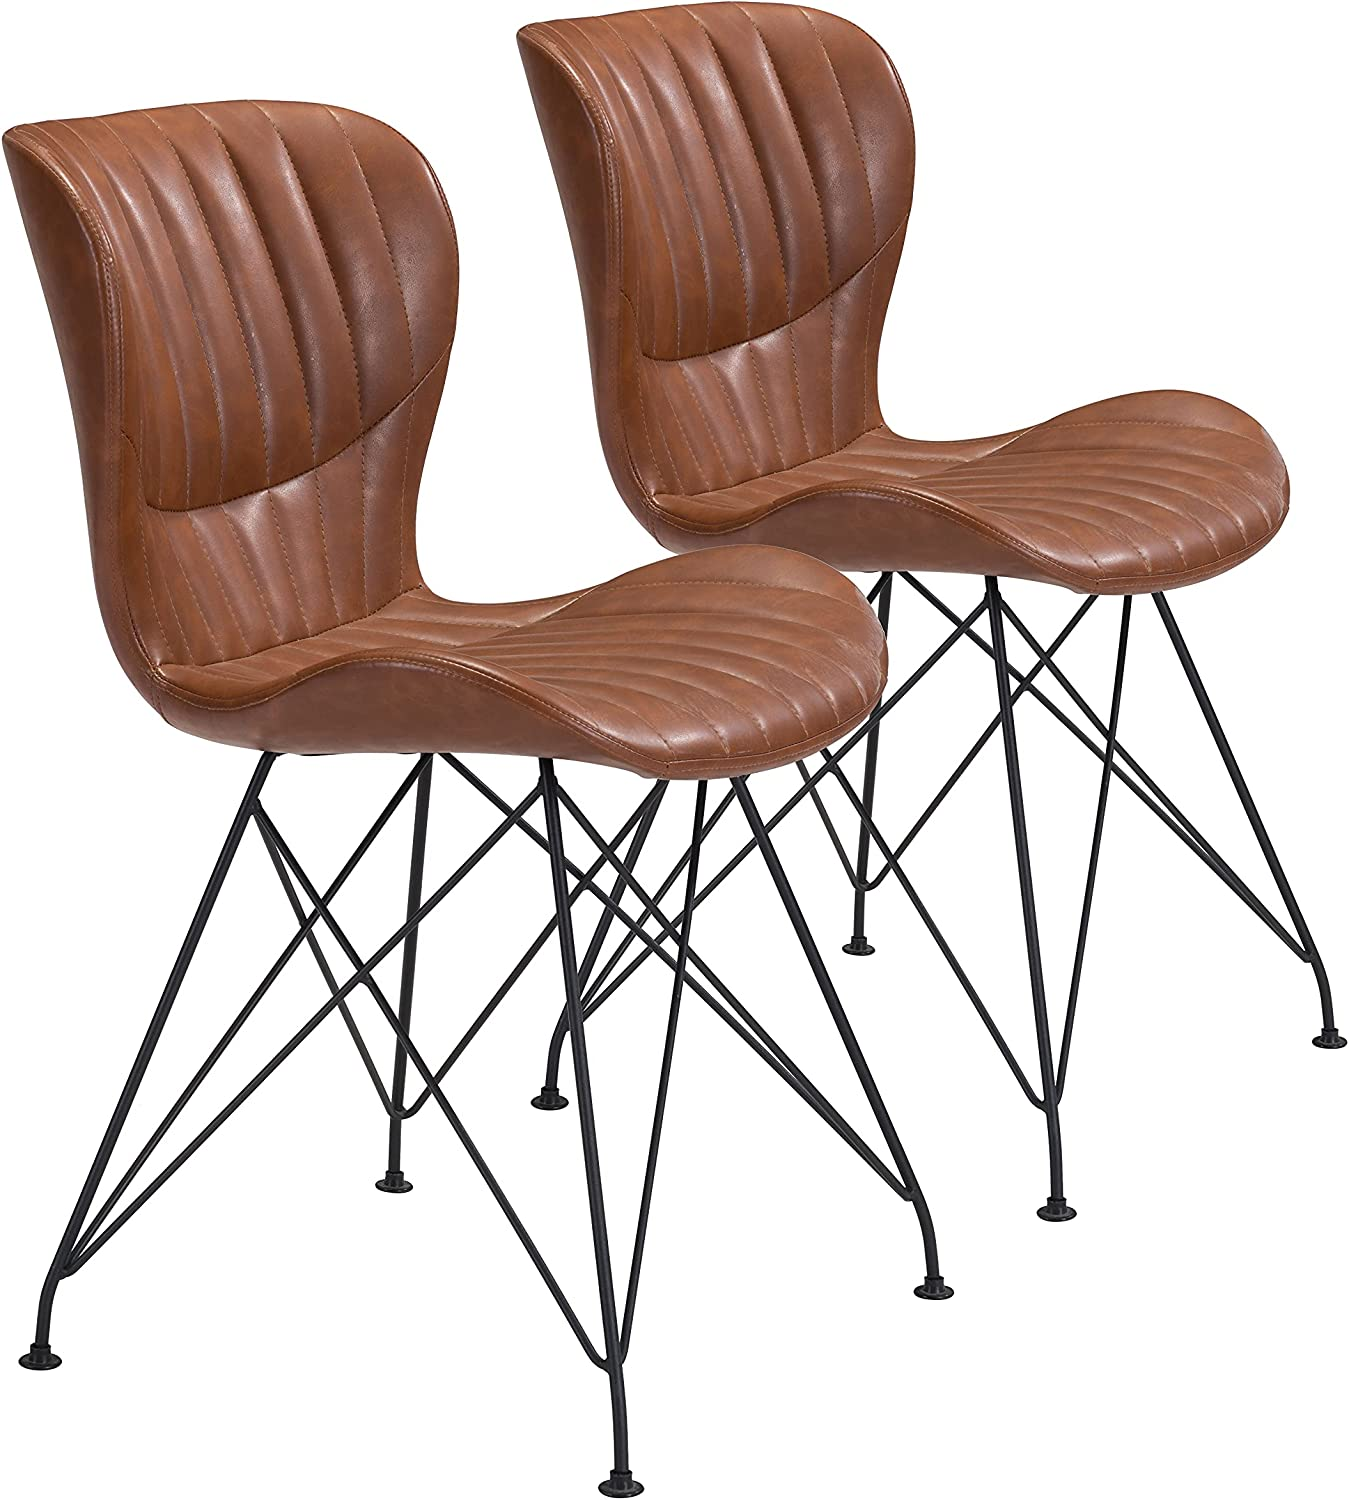 Zuo Modern Dining Chair Seattle Mall Set Columbus Mall Gabby Brown 2 of Vintage